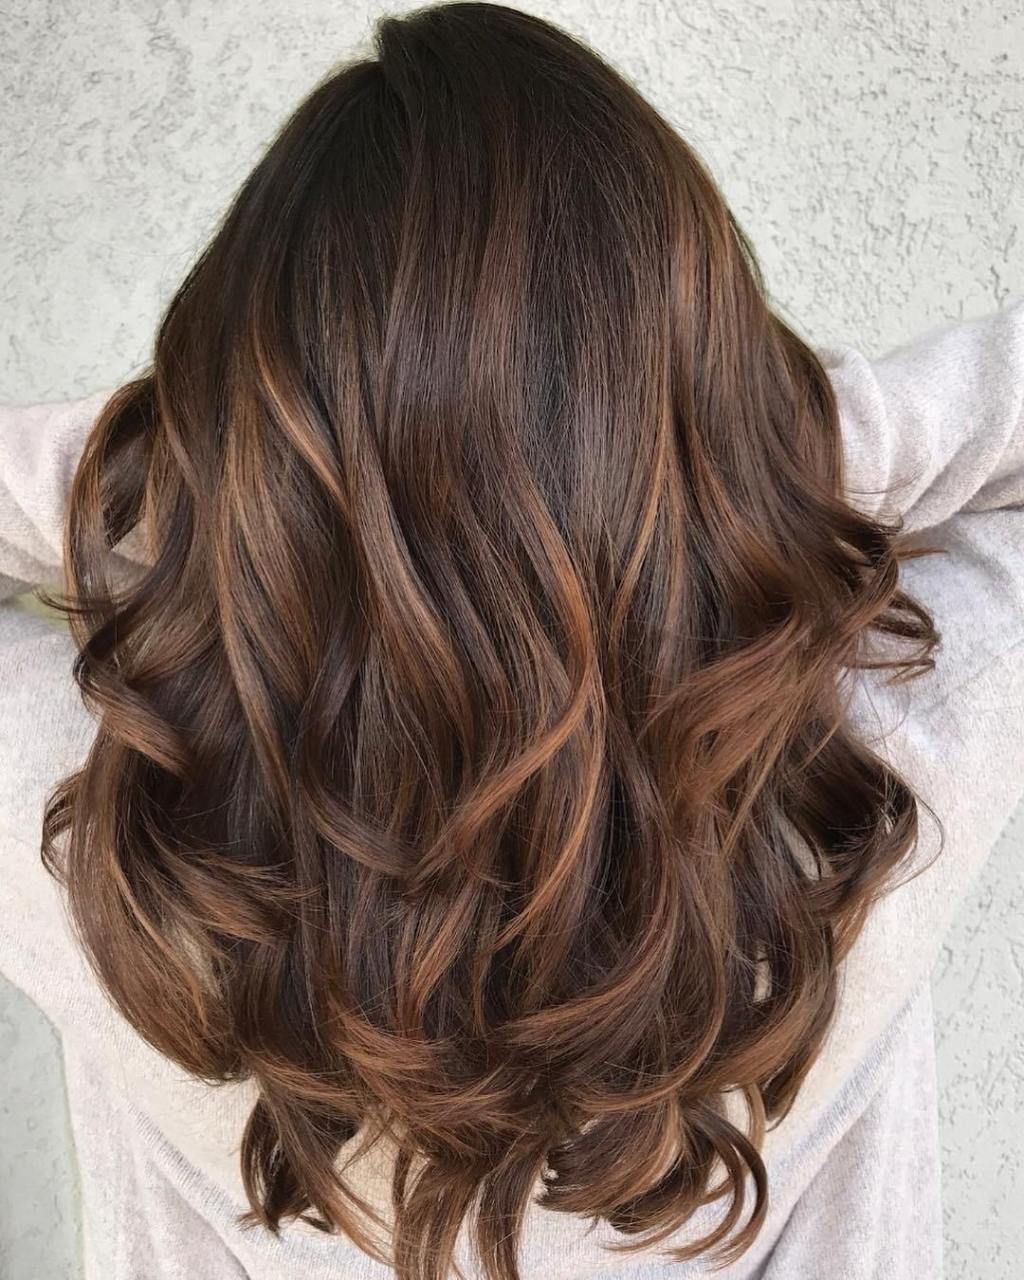 60 Looks With Caramel Highlights On Brown And Dark Brown Hair Mocha Color Hair Brown Hair Balayage Brown Hair Colors